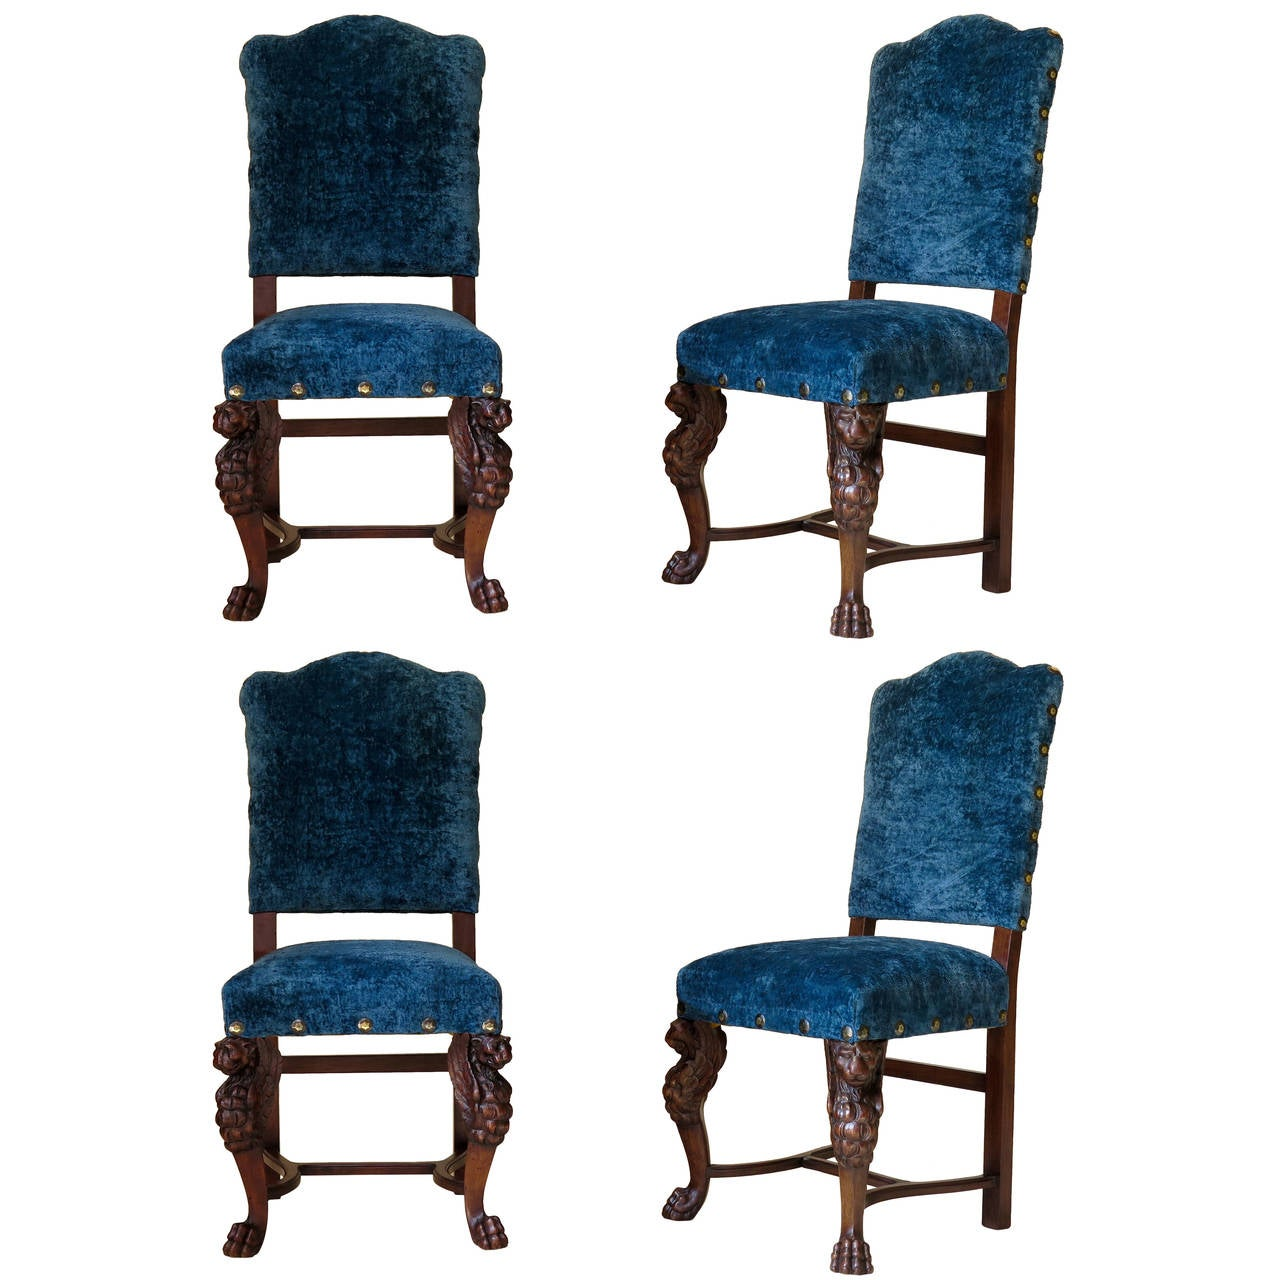 Set of Four Renaissance Style Chairs - France, 19th Century